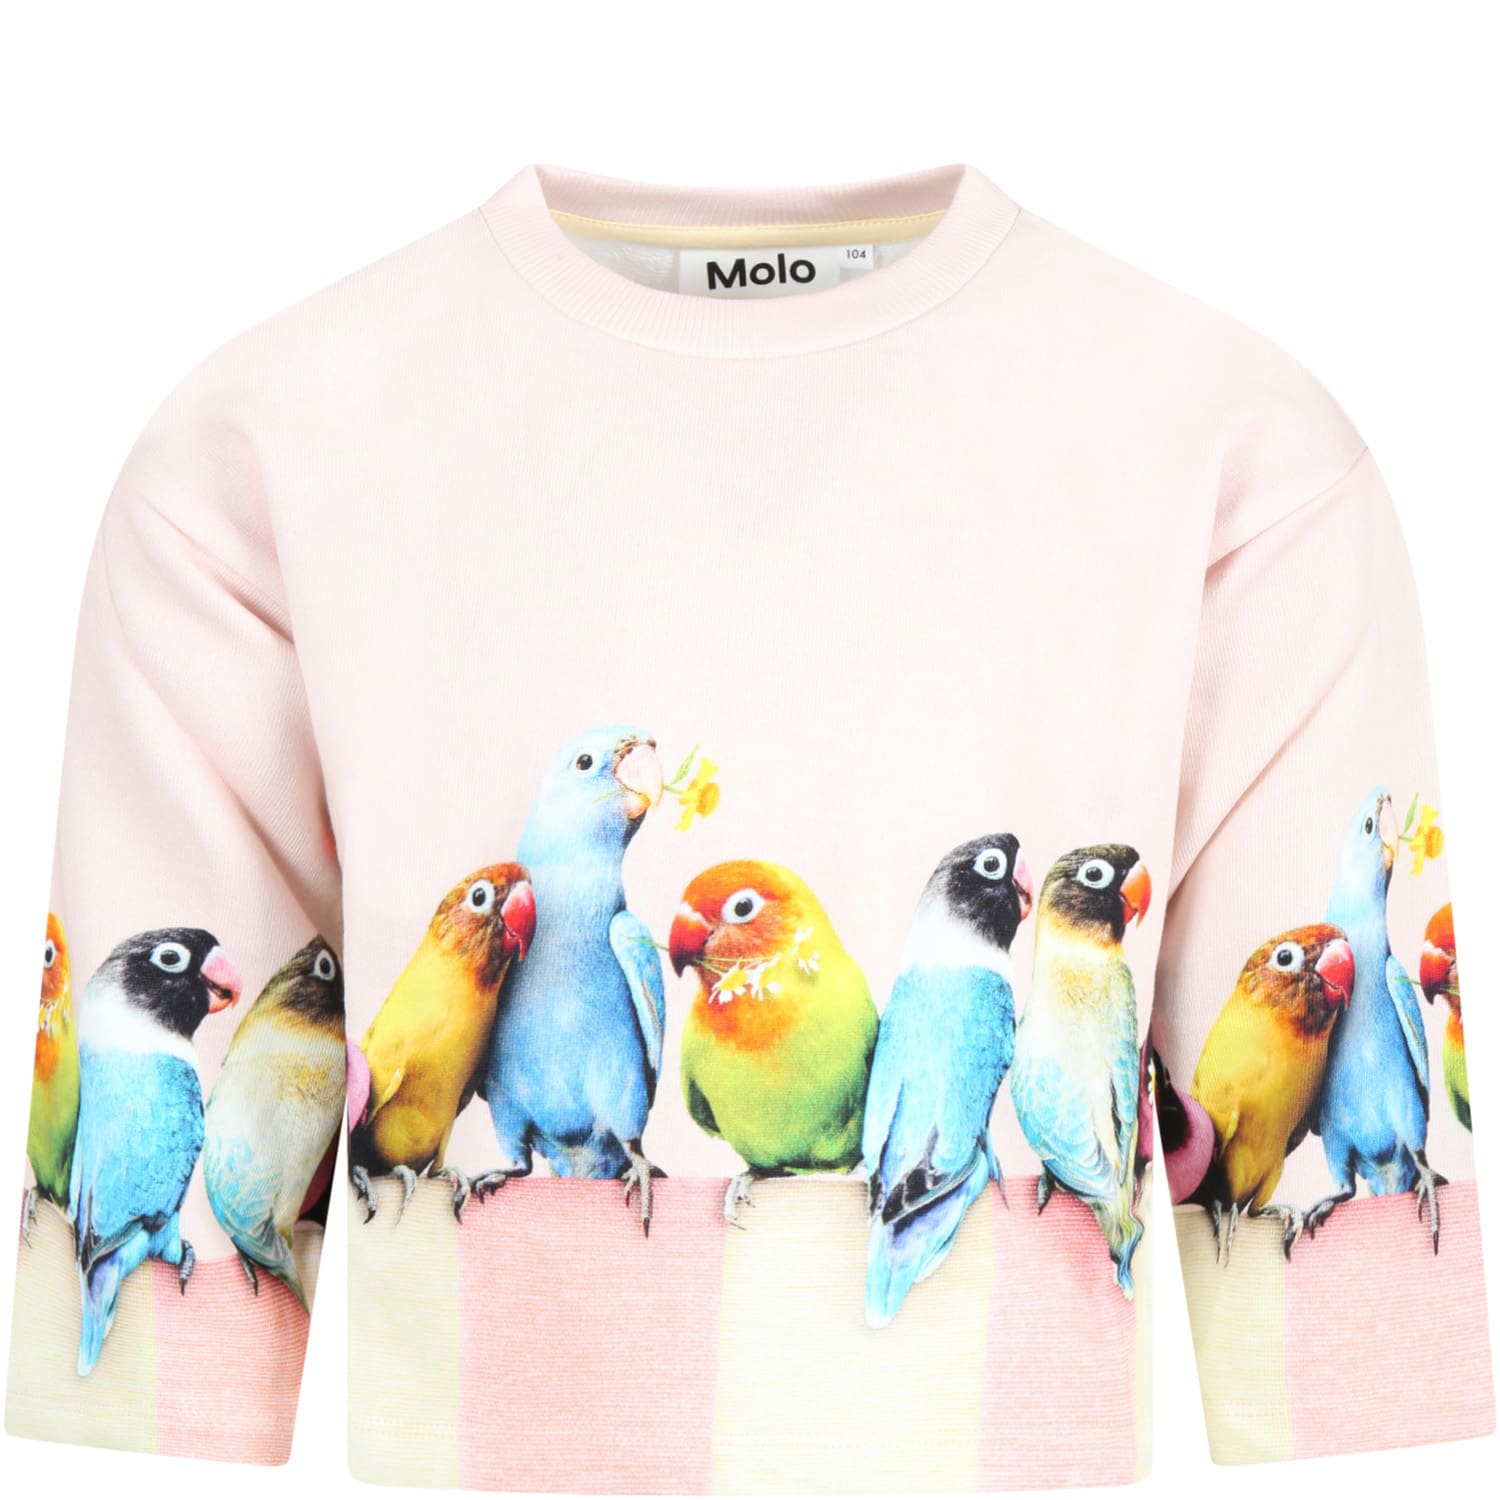 Molo Pink Sweatshirt For Girl With Parrots